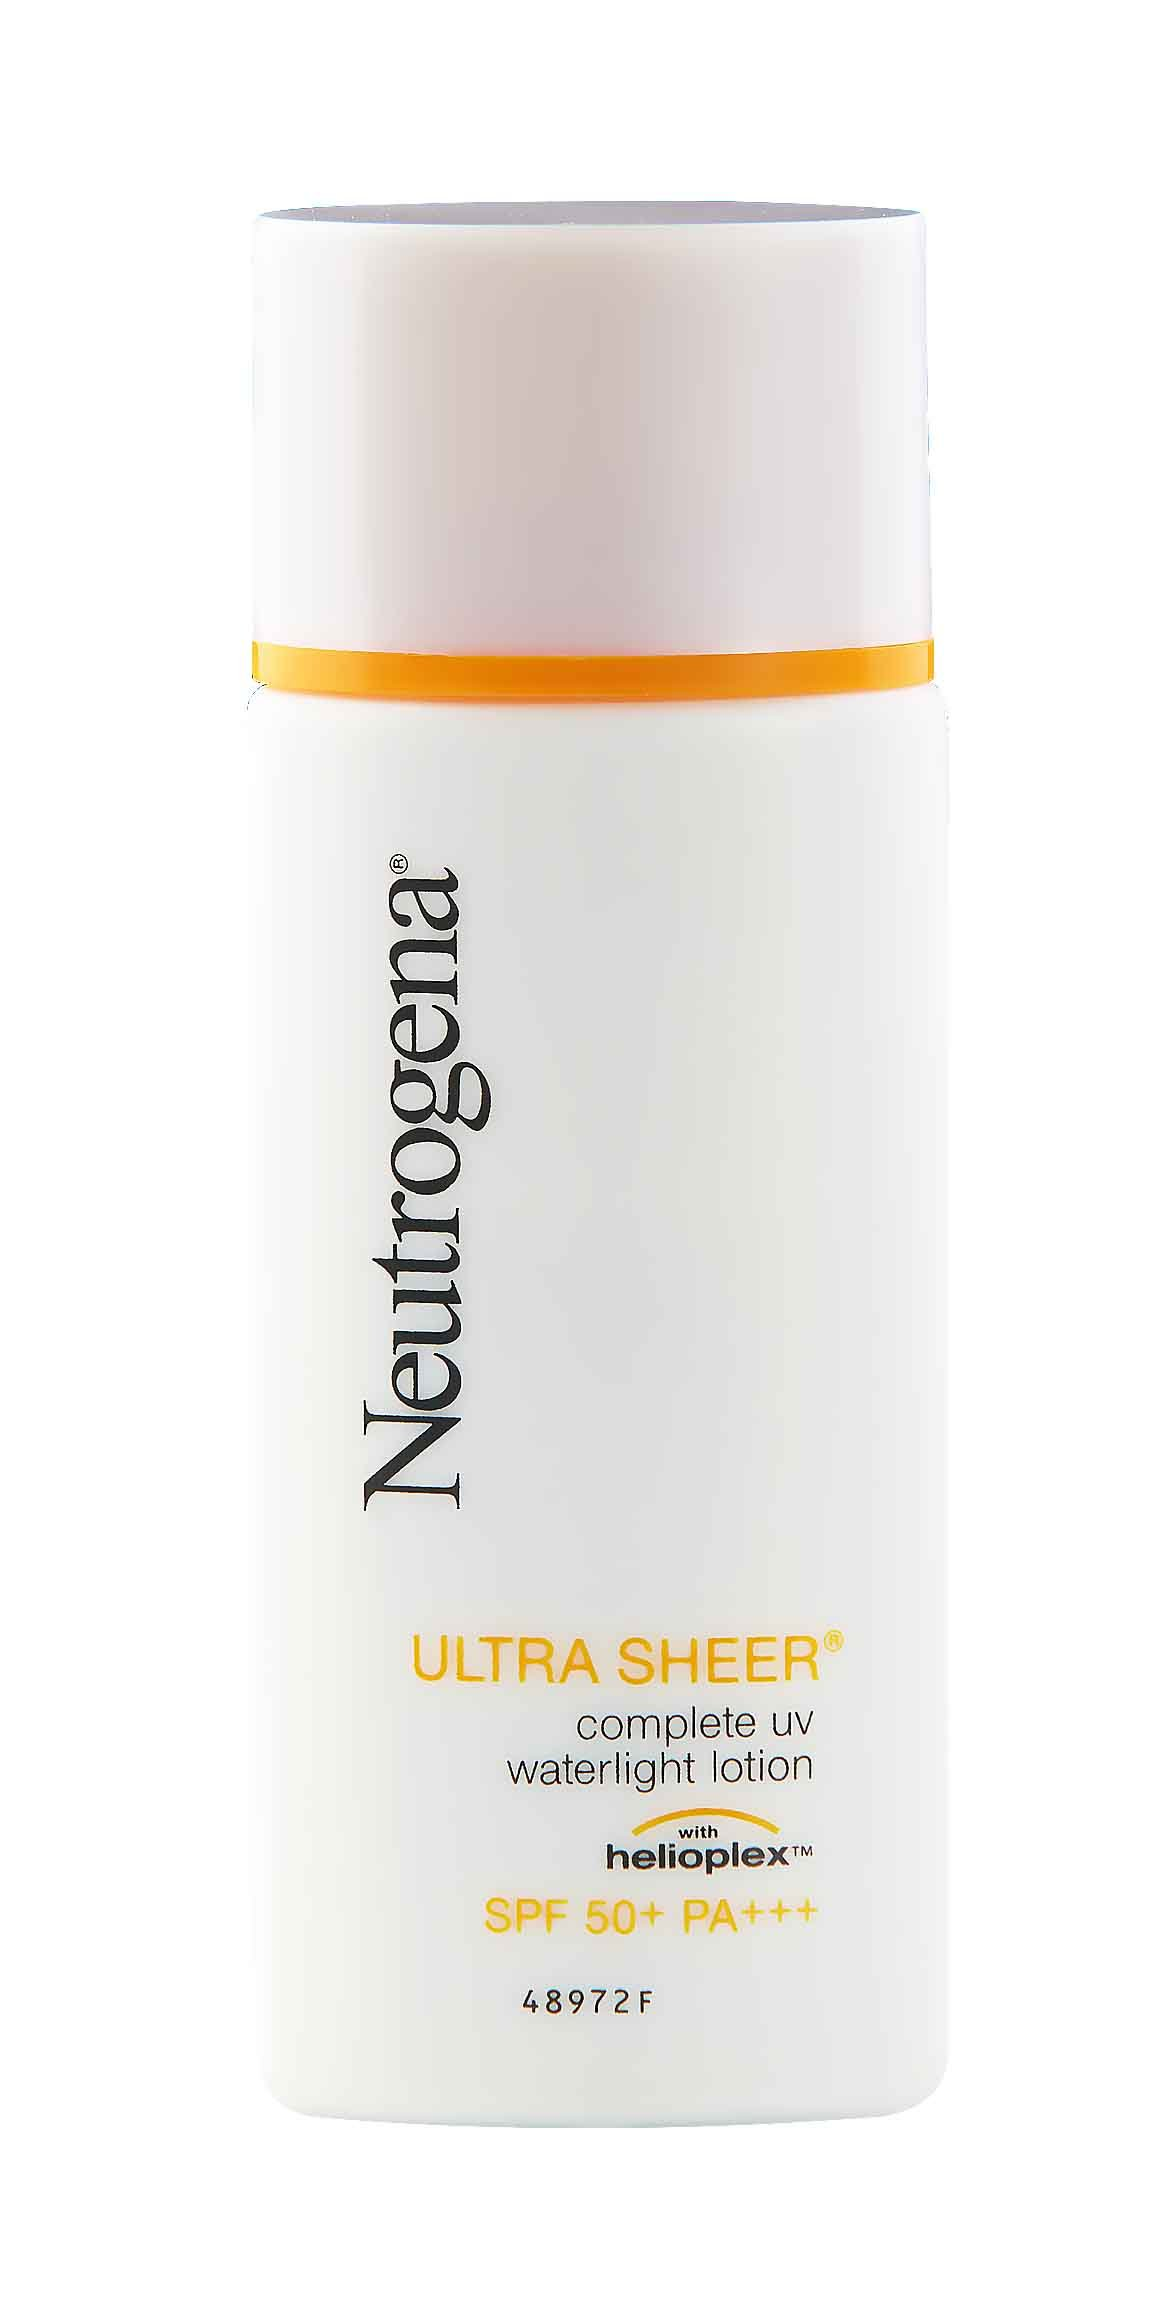 Neutrogena® Ultra Sheer Complete UV Waterlight Lotion SPF50 PA+++ 30ml